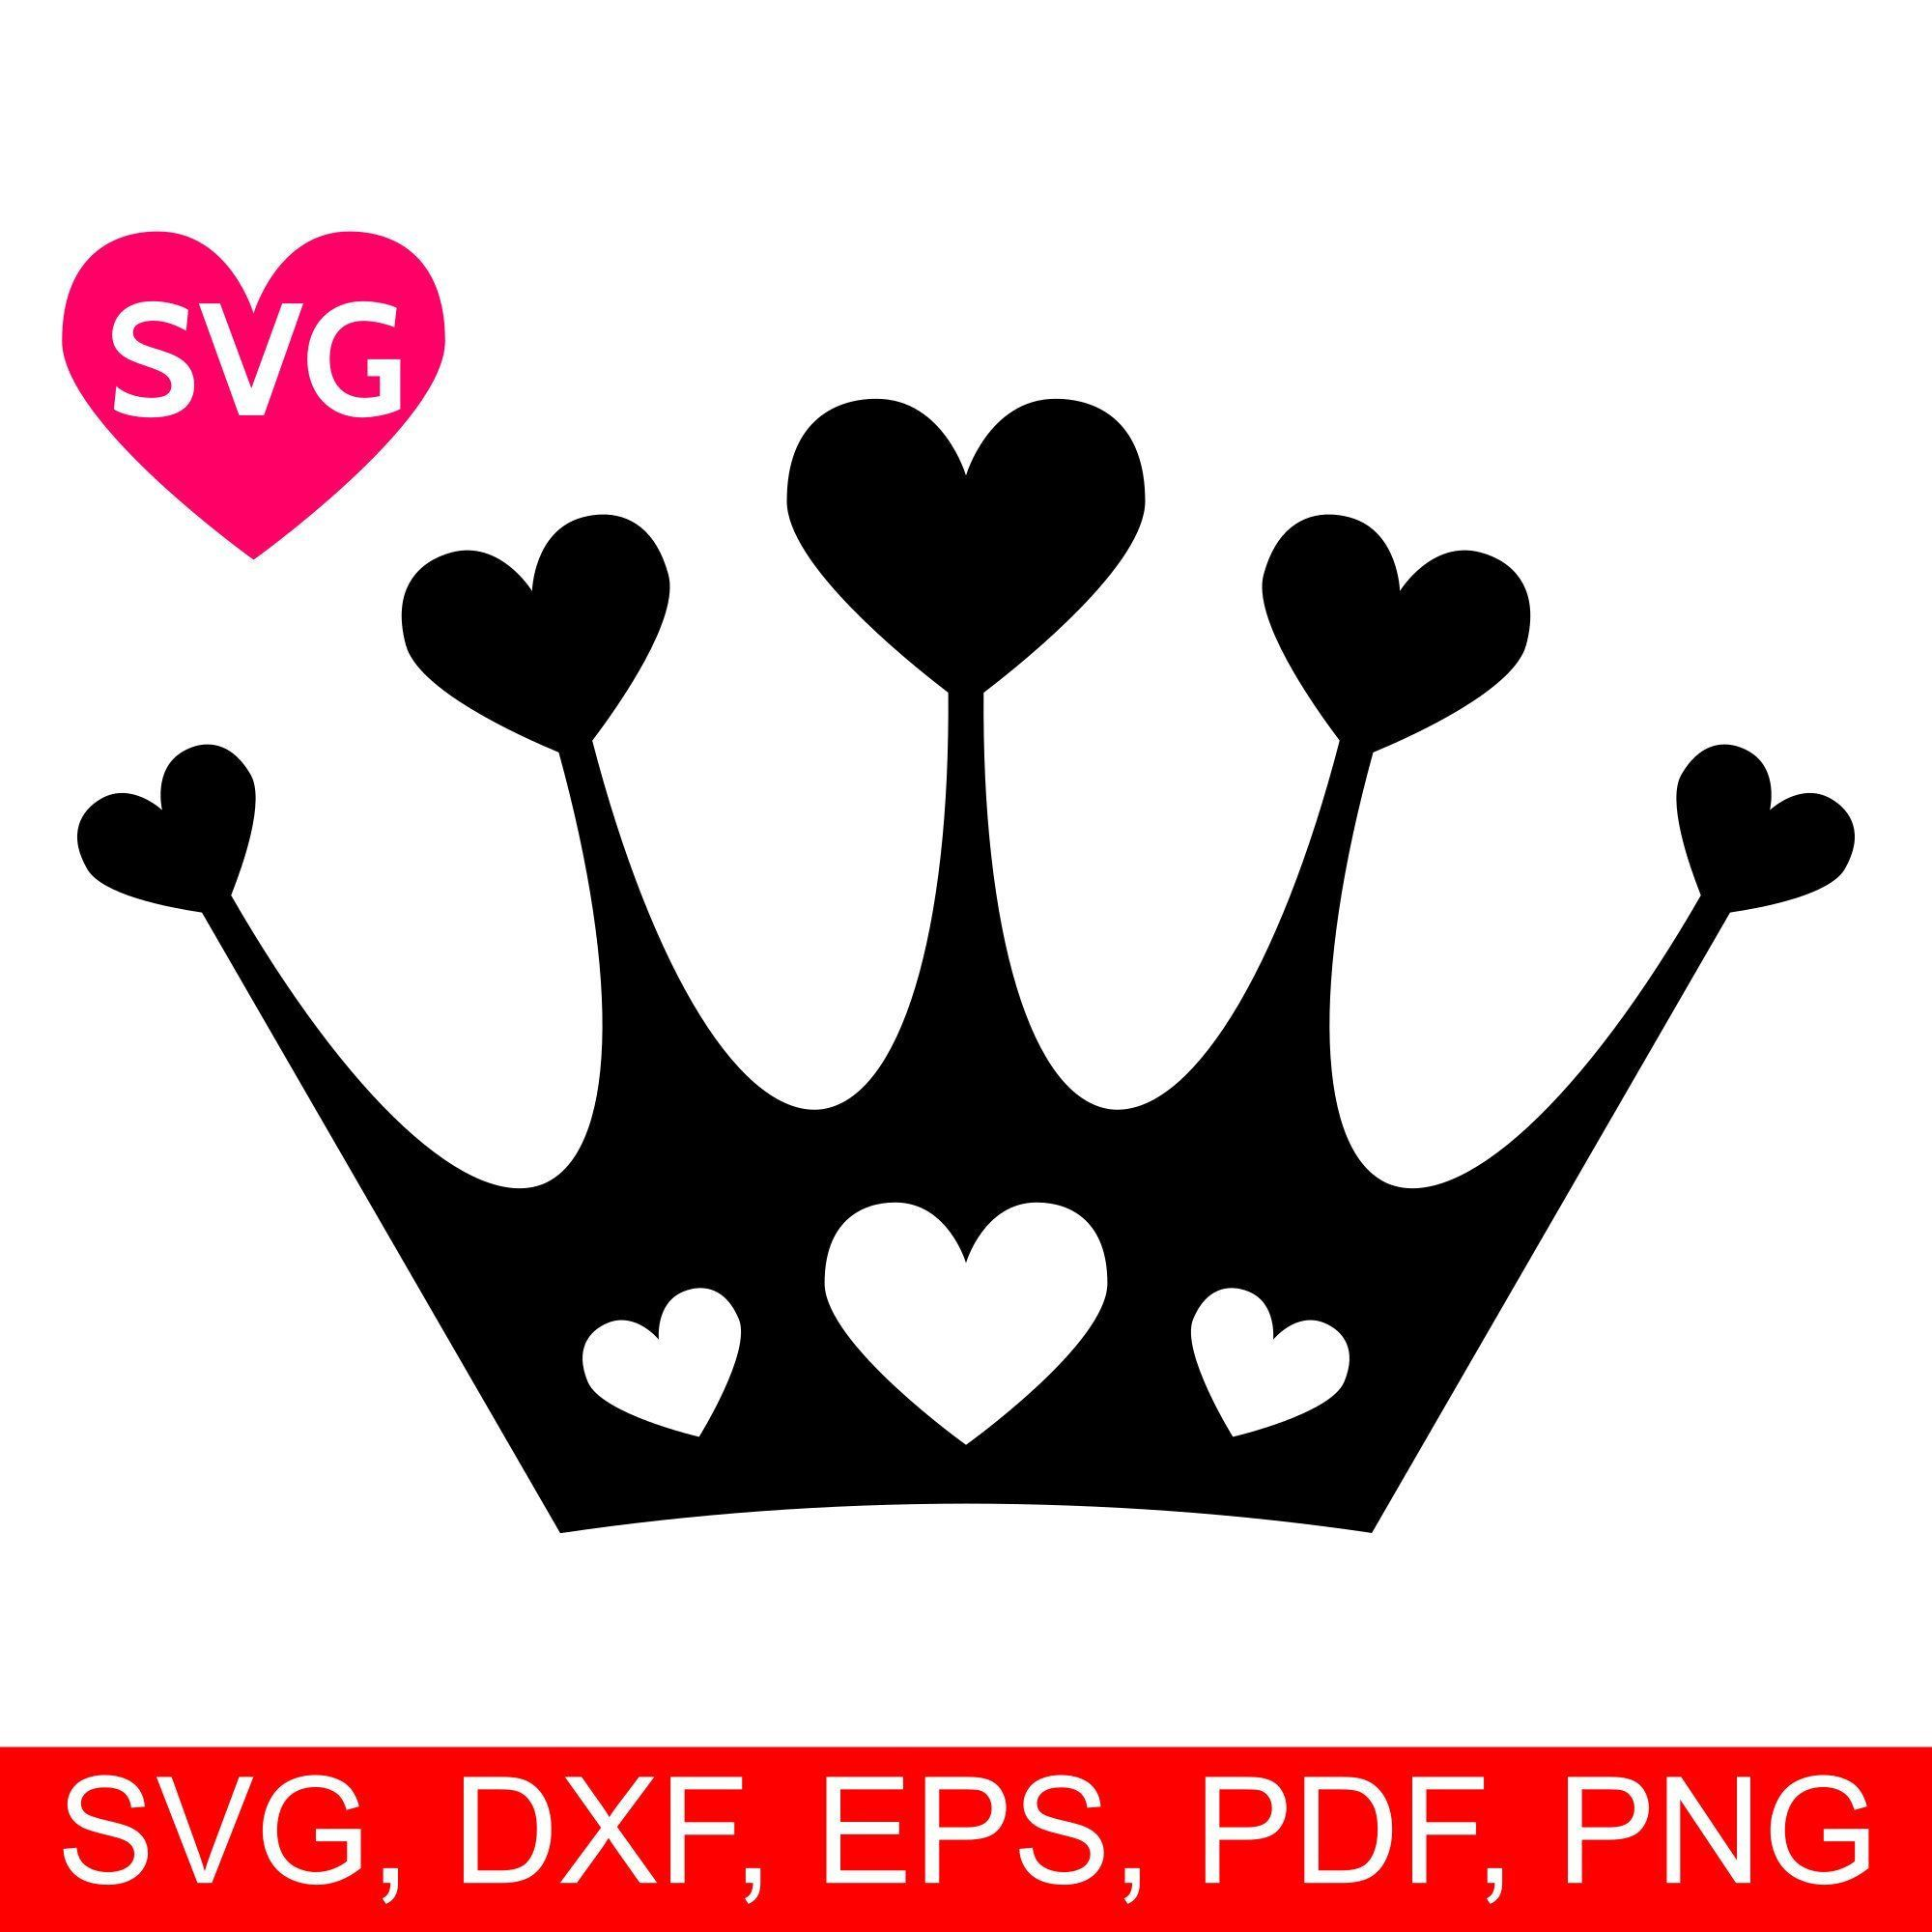 003 Striking Queen Of Heart Crown Printable Inspiration  TemplateFull